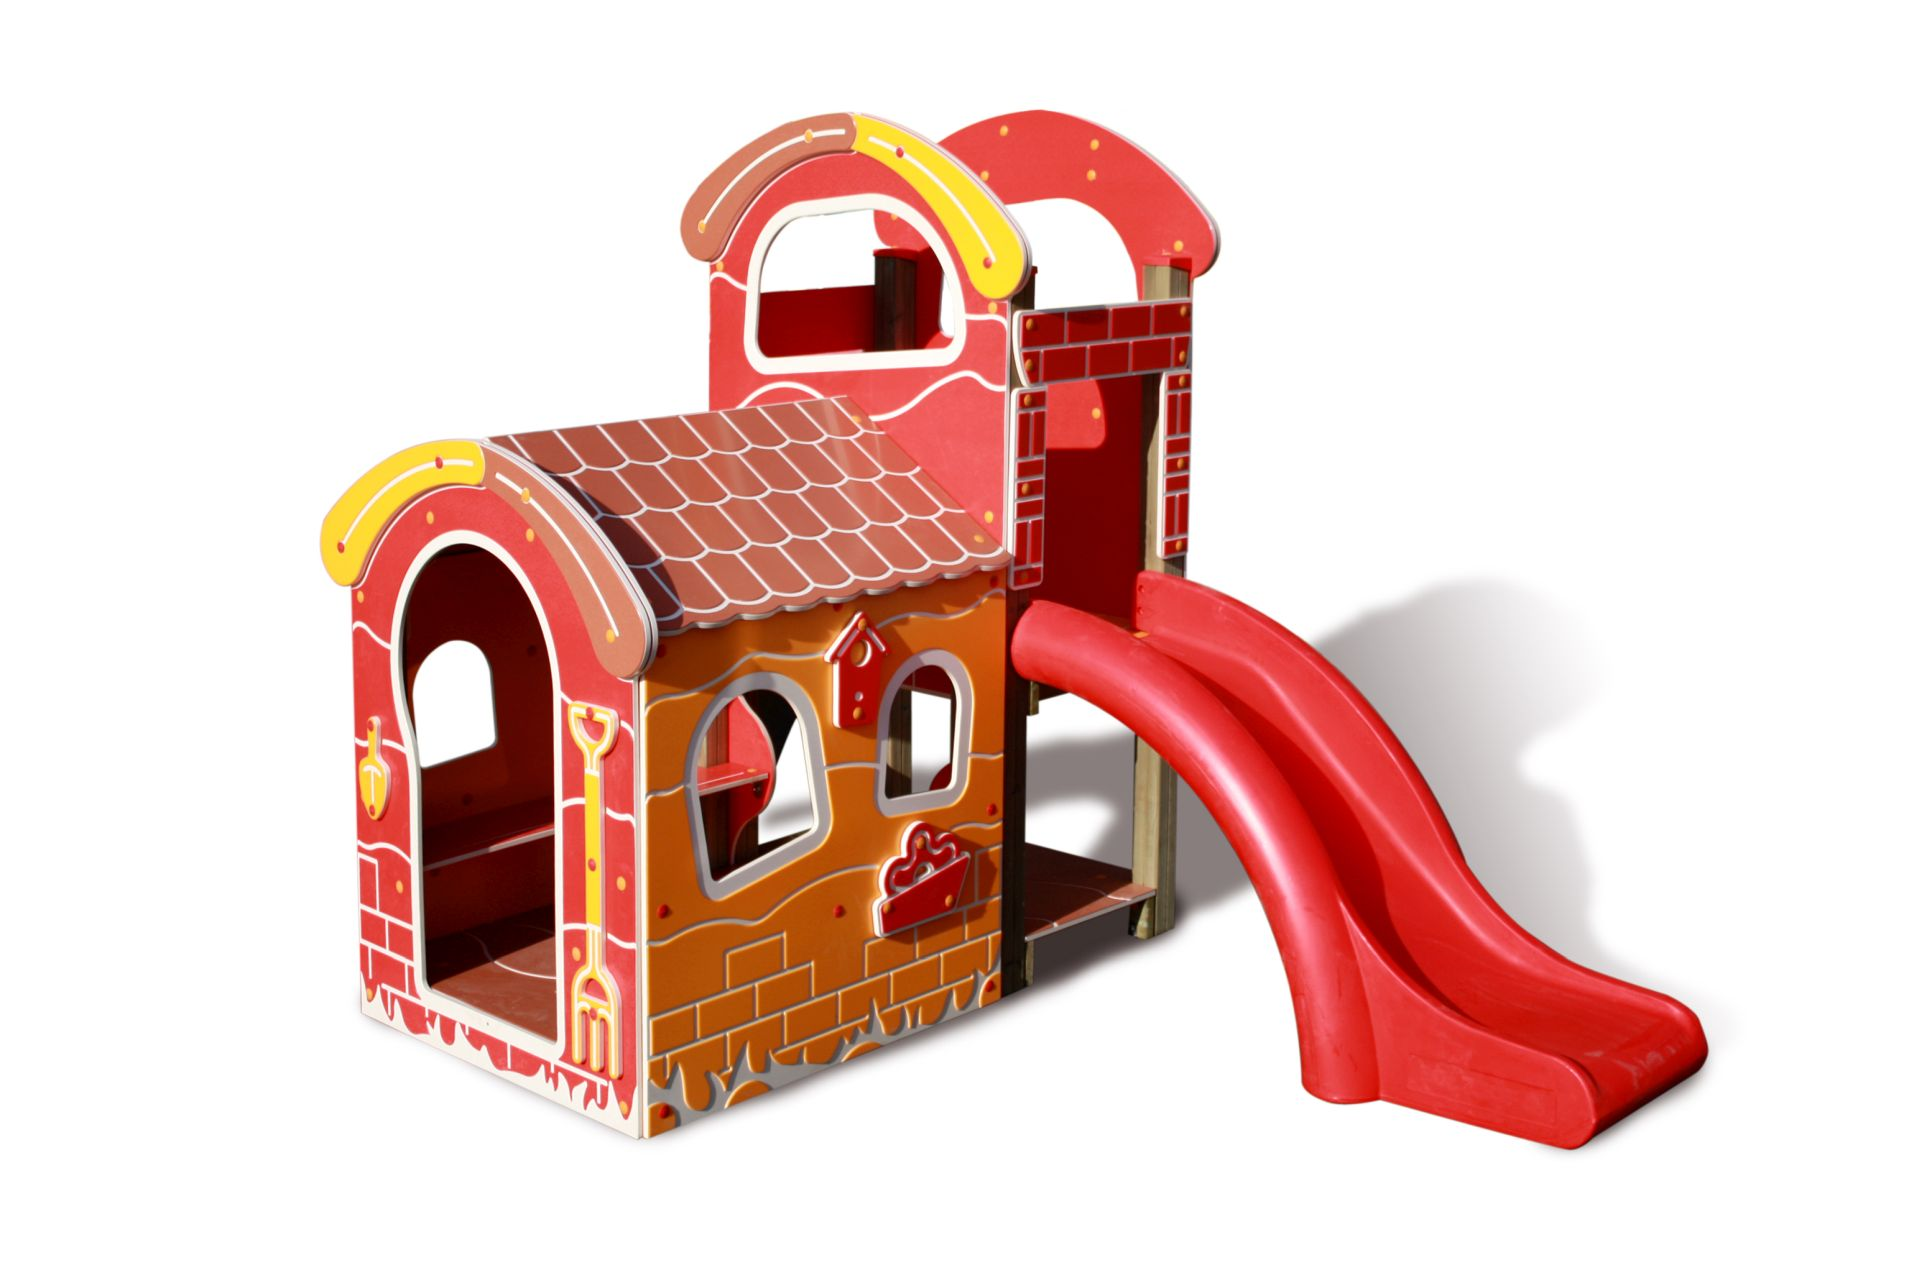 Holzhof TOT HOUSE Cottage playhouse in wood with polyethylene slide and ramp, h 84, new roof and new decorations